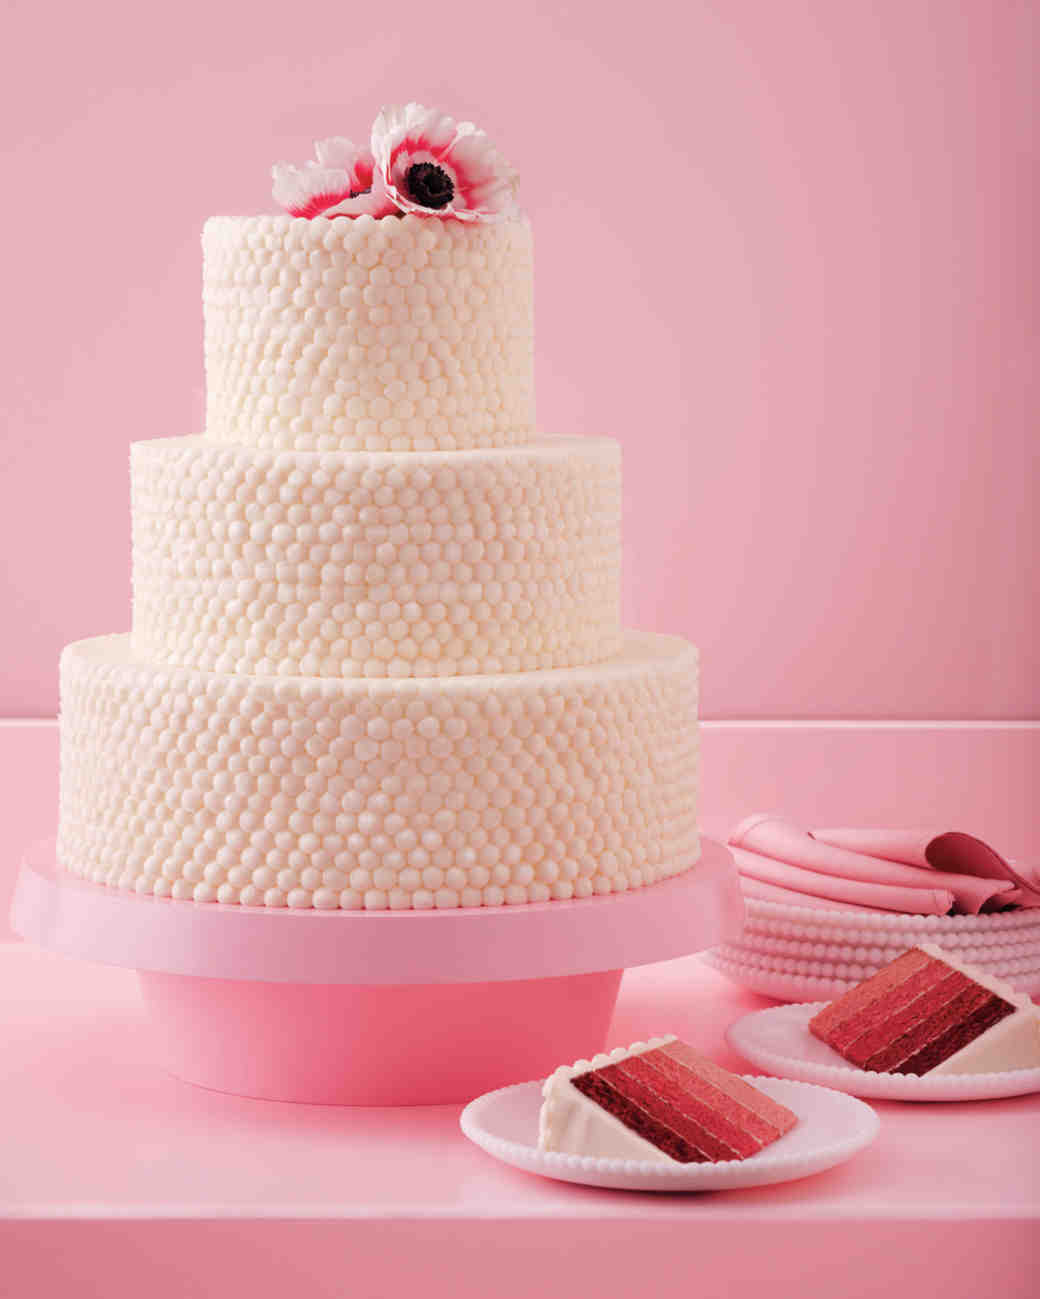 Wedding Cakes: 15 Red Velvet Wedding Cakes & Confections